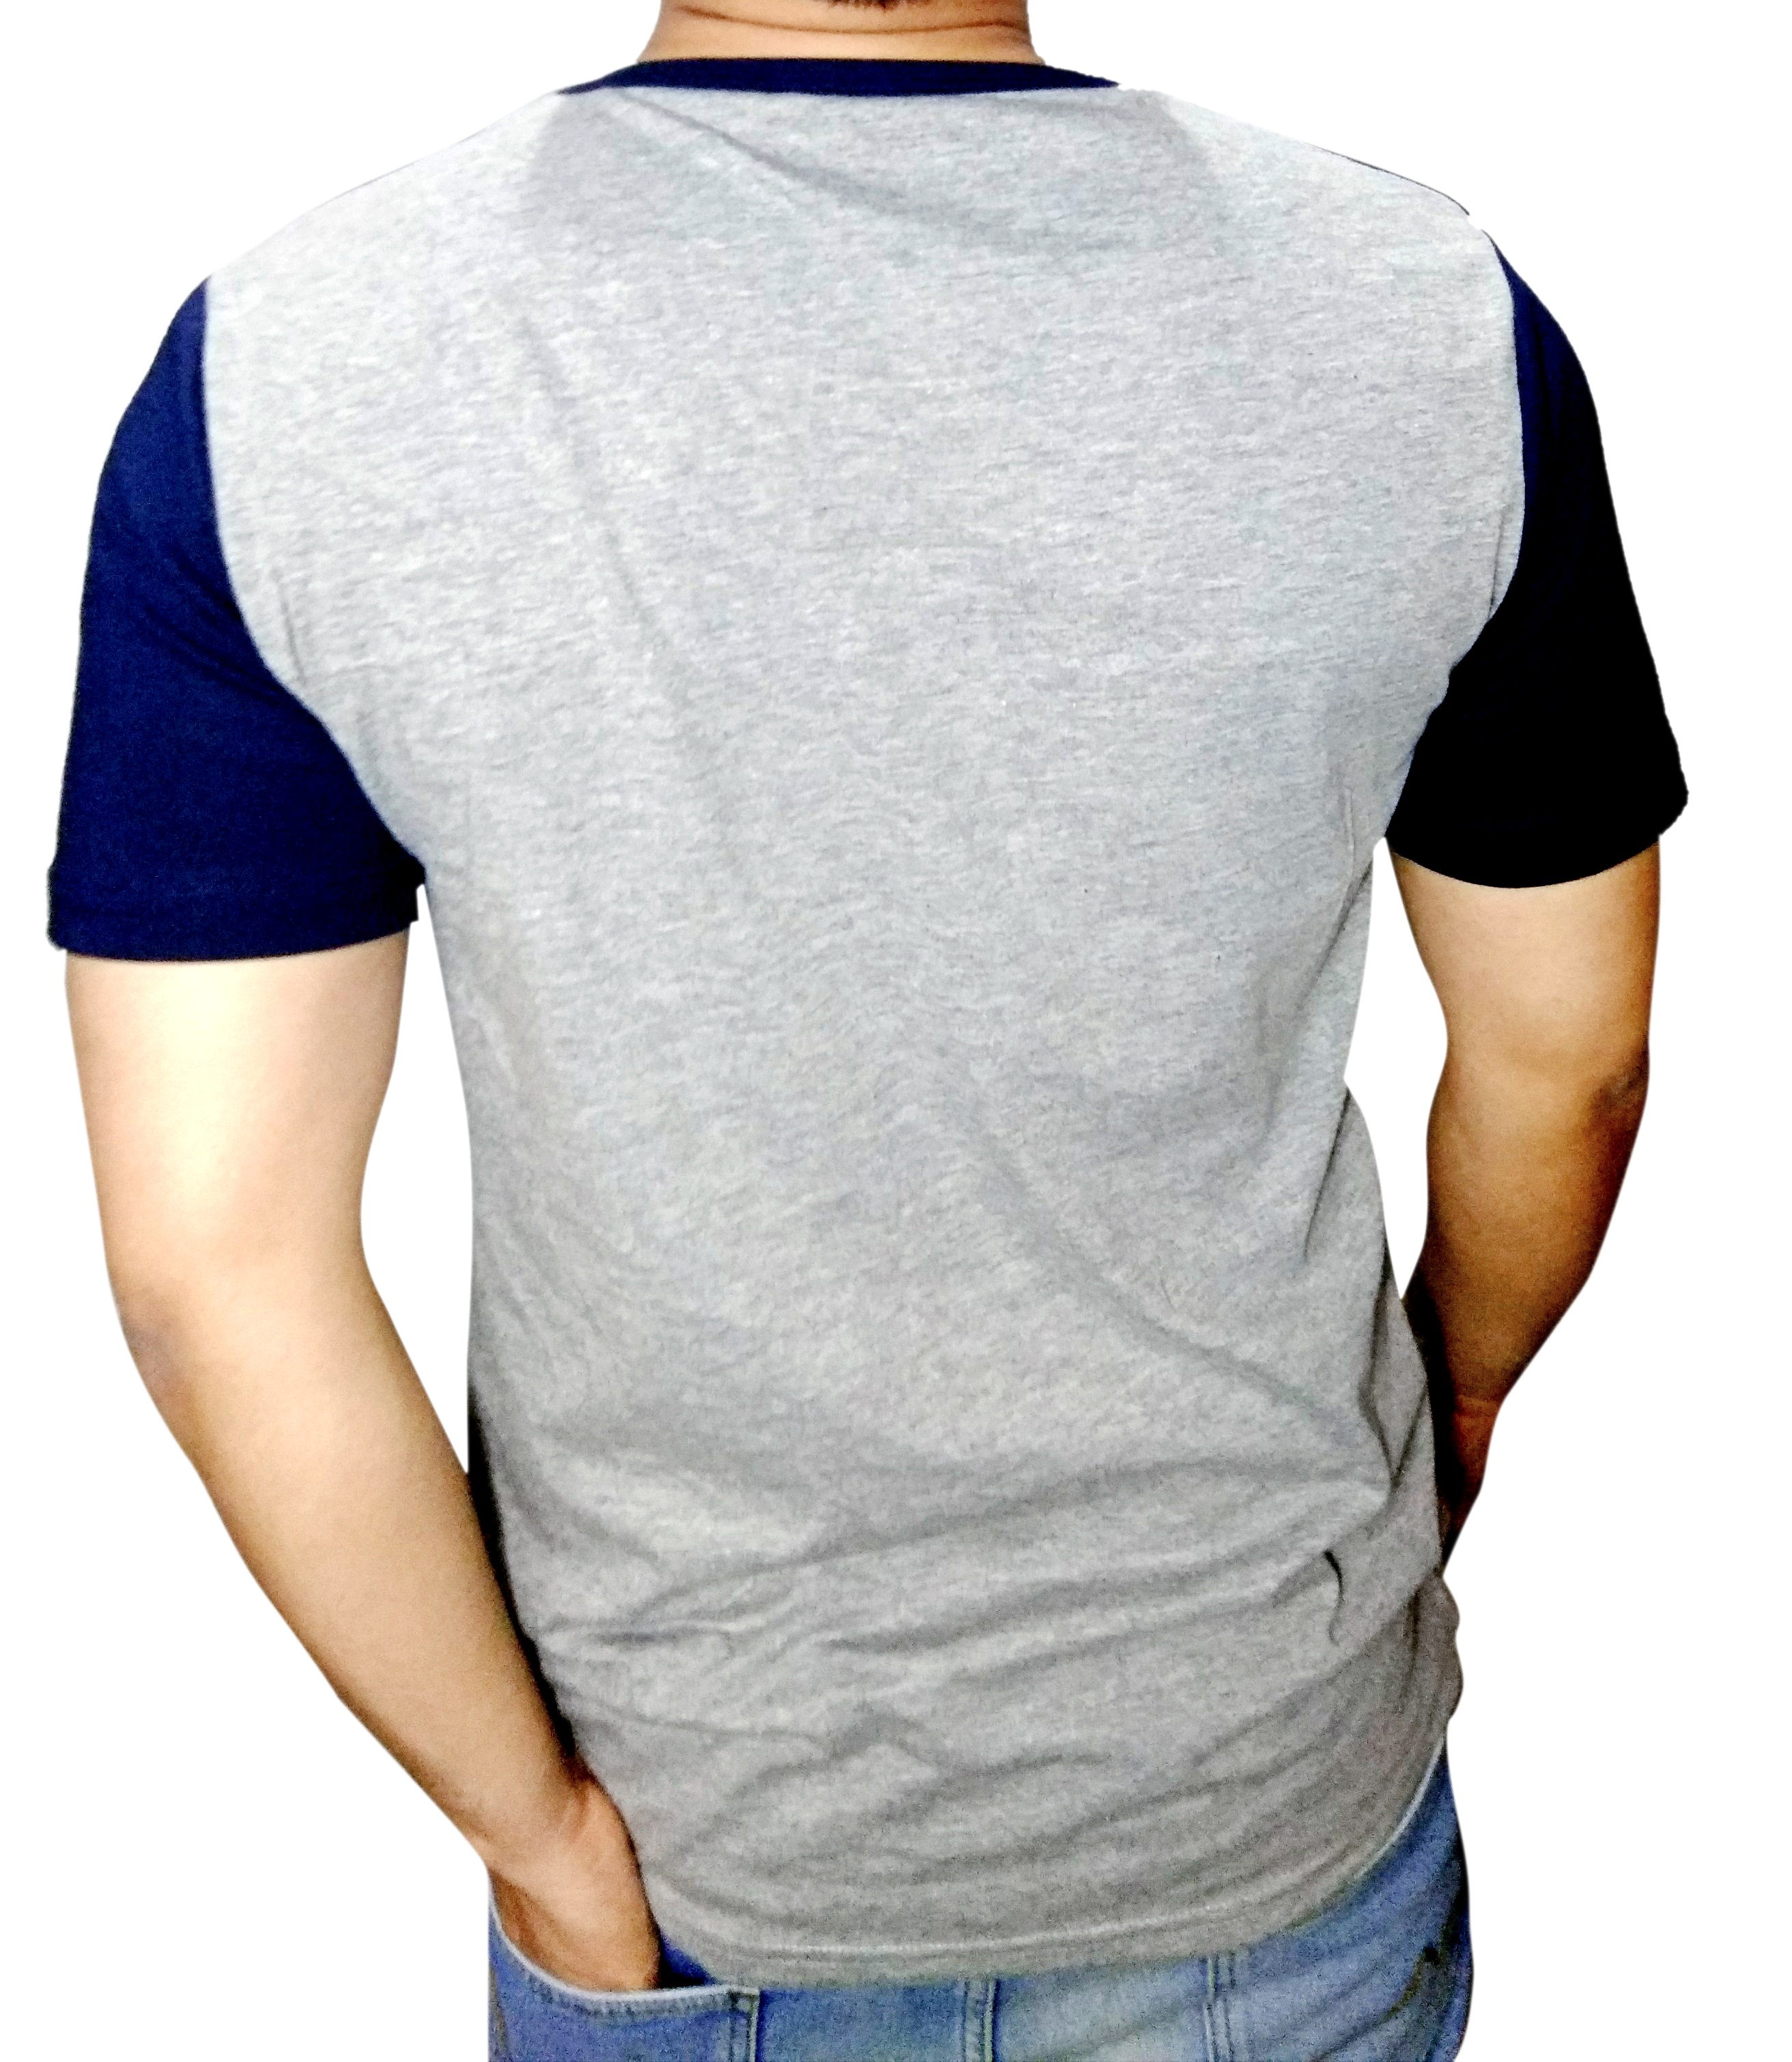 Mens Round Neck T-Shirt with Pocket Navy & Grey_2